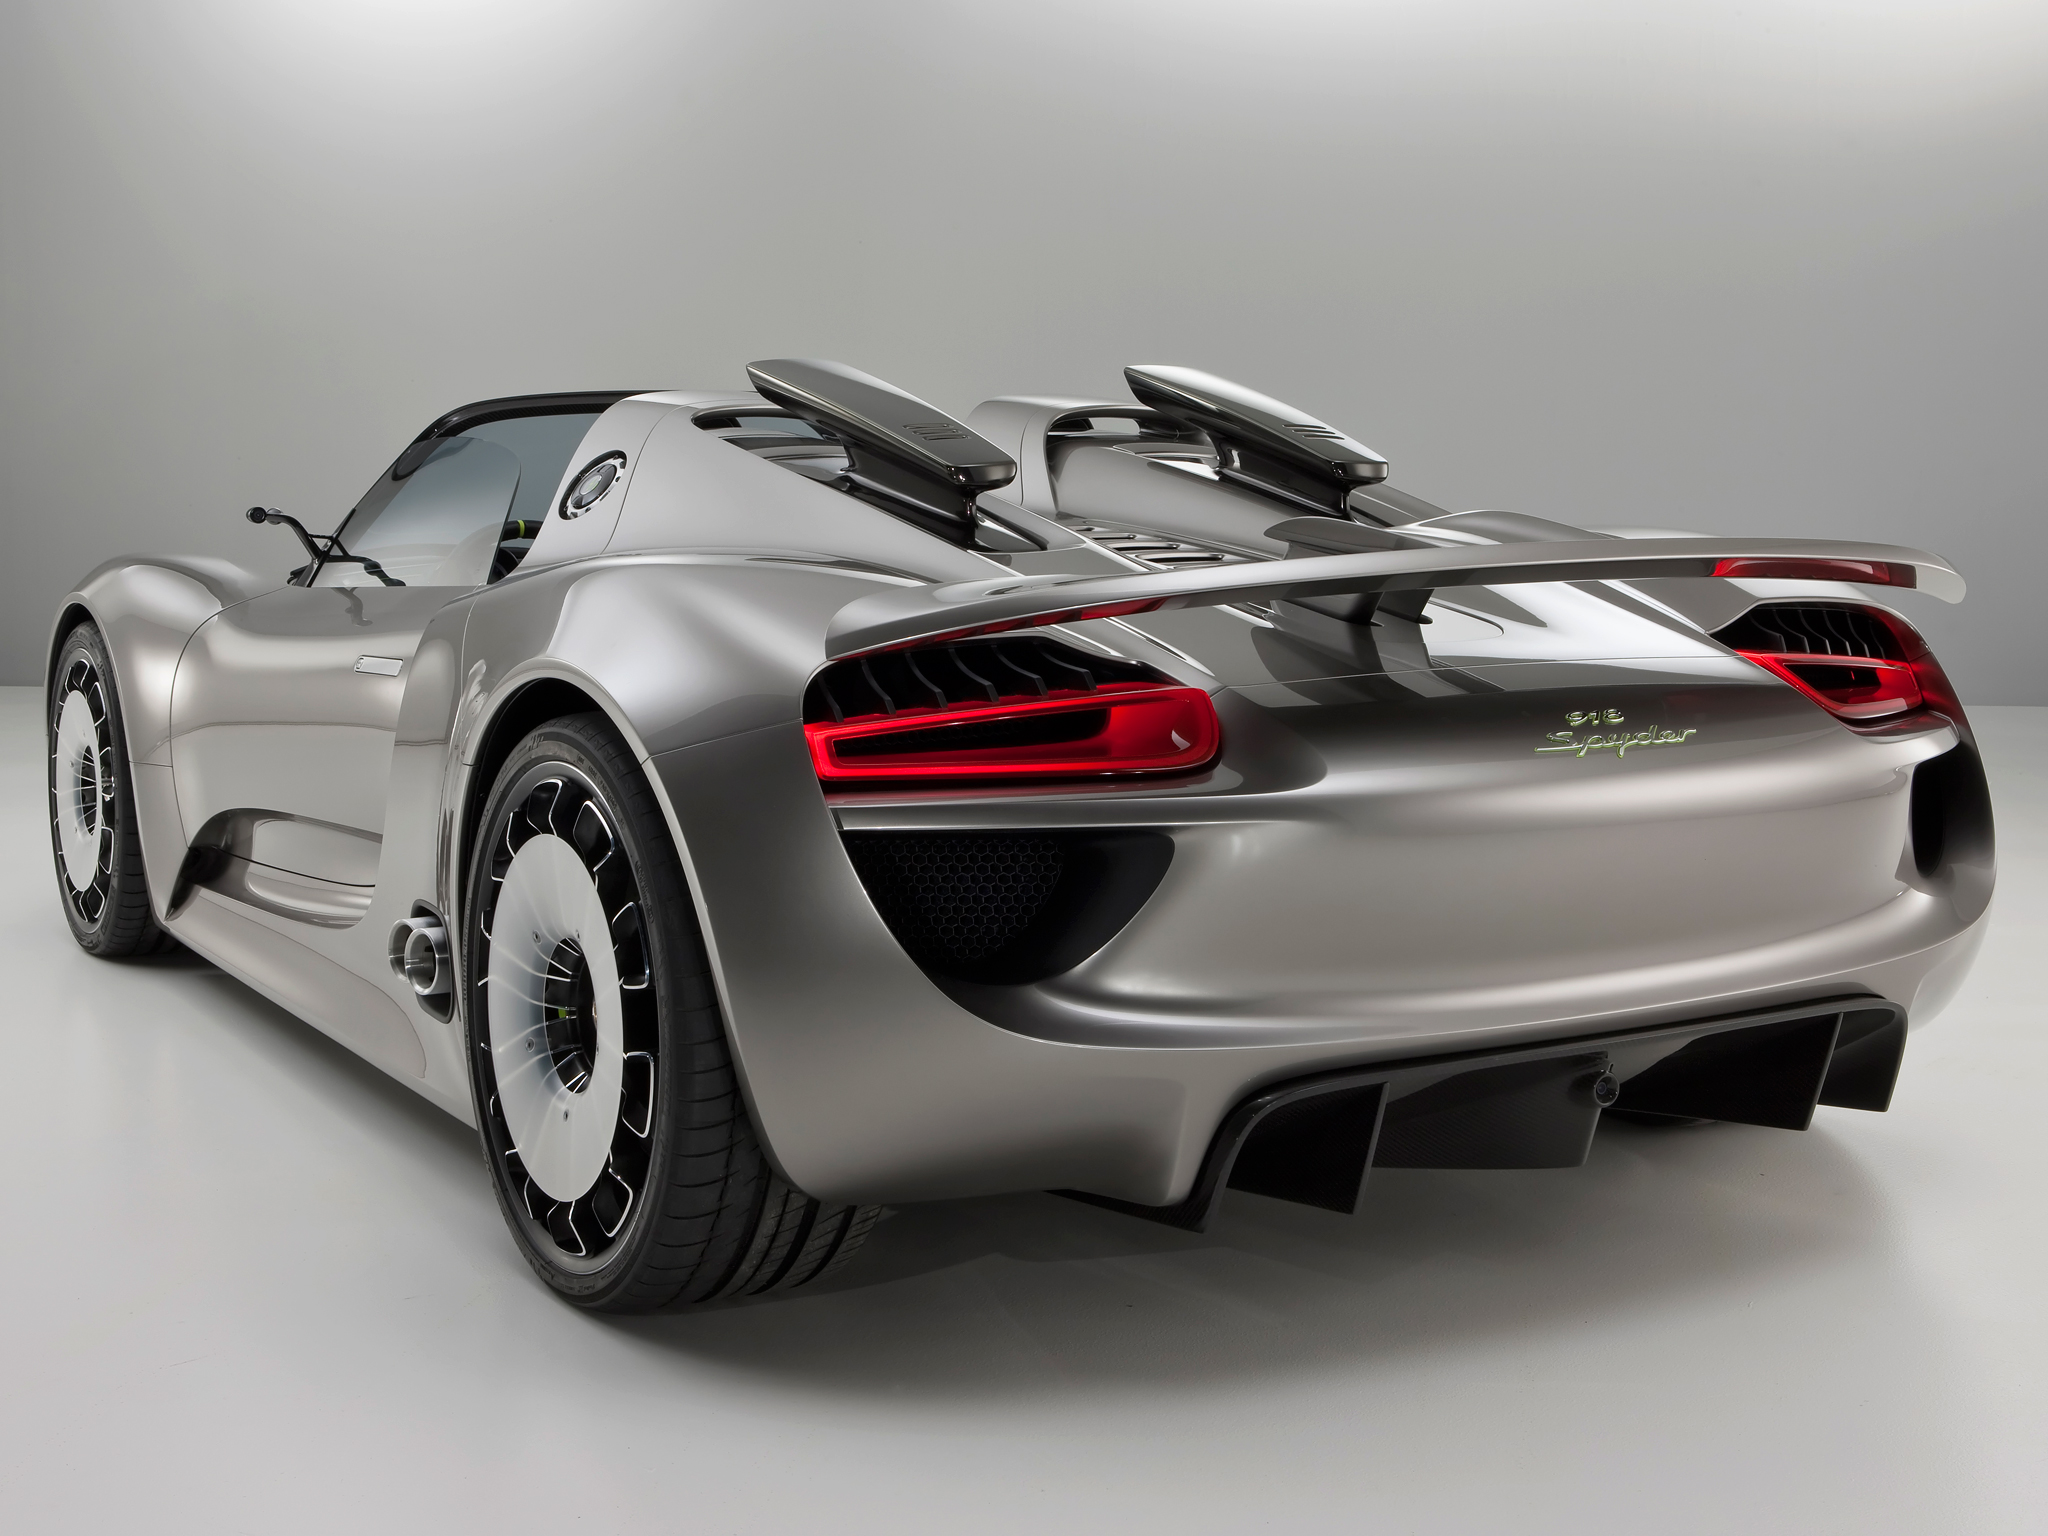 2010 porsche 918 spyder concept supercar supercars g wallpaper 2048x1536. Black Bedroom Furniture Sets. Home Design Ideas